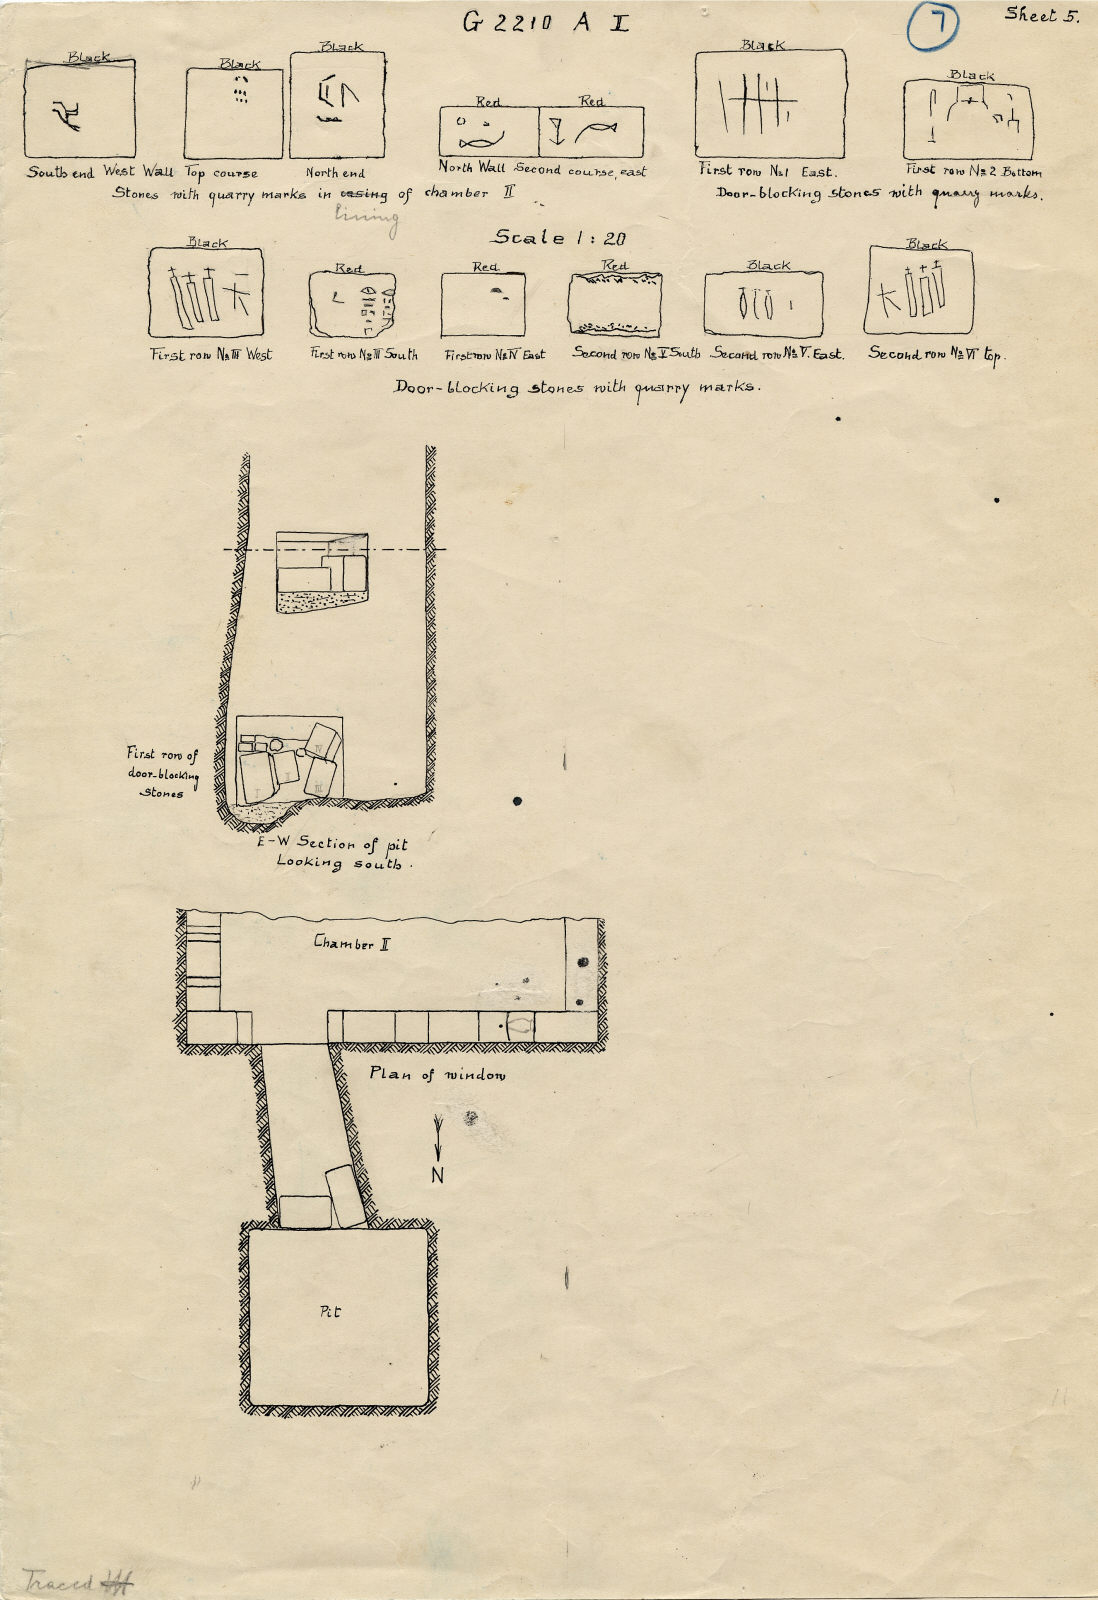 Maps and plans: G 2210, Shaft A and  blocking stones with quarry marks